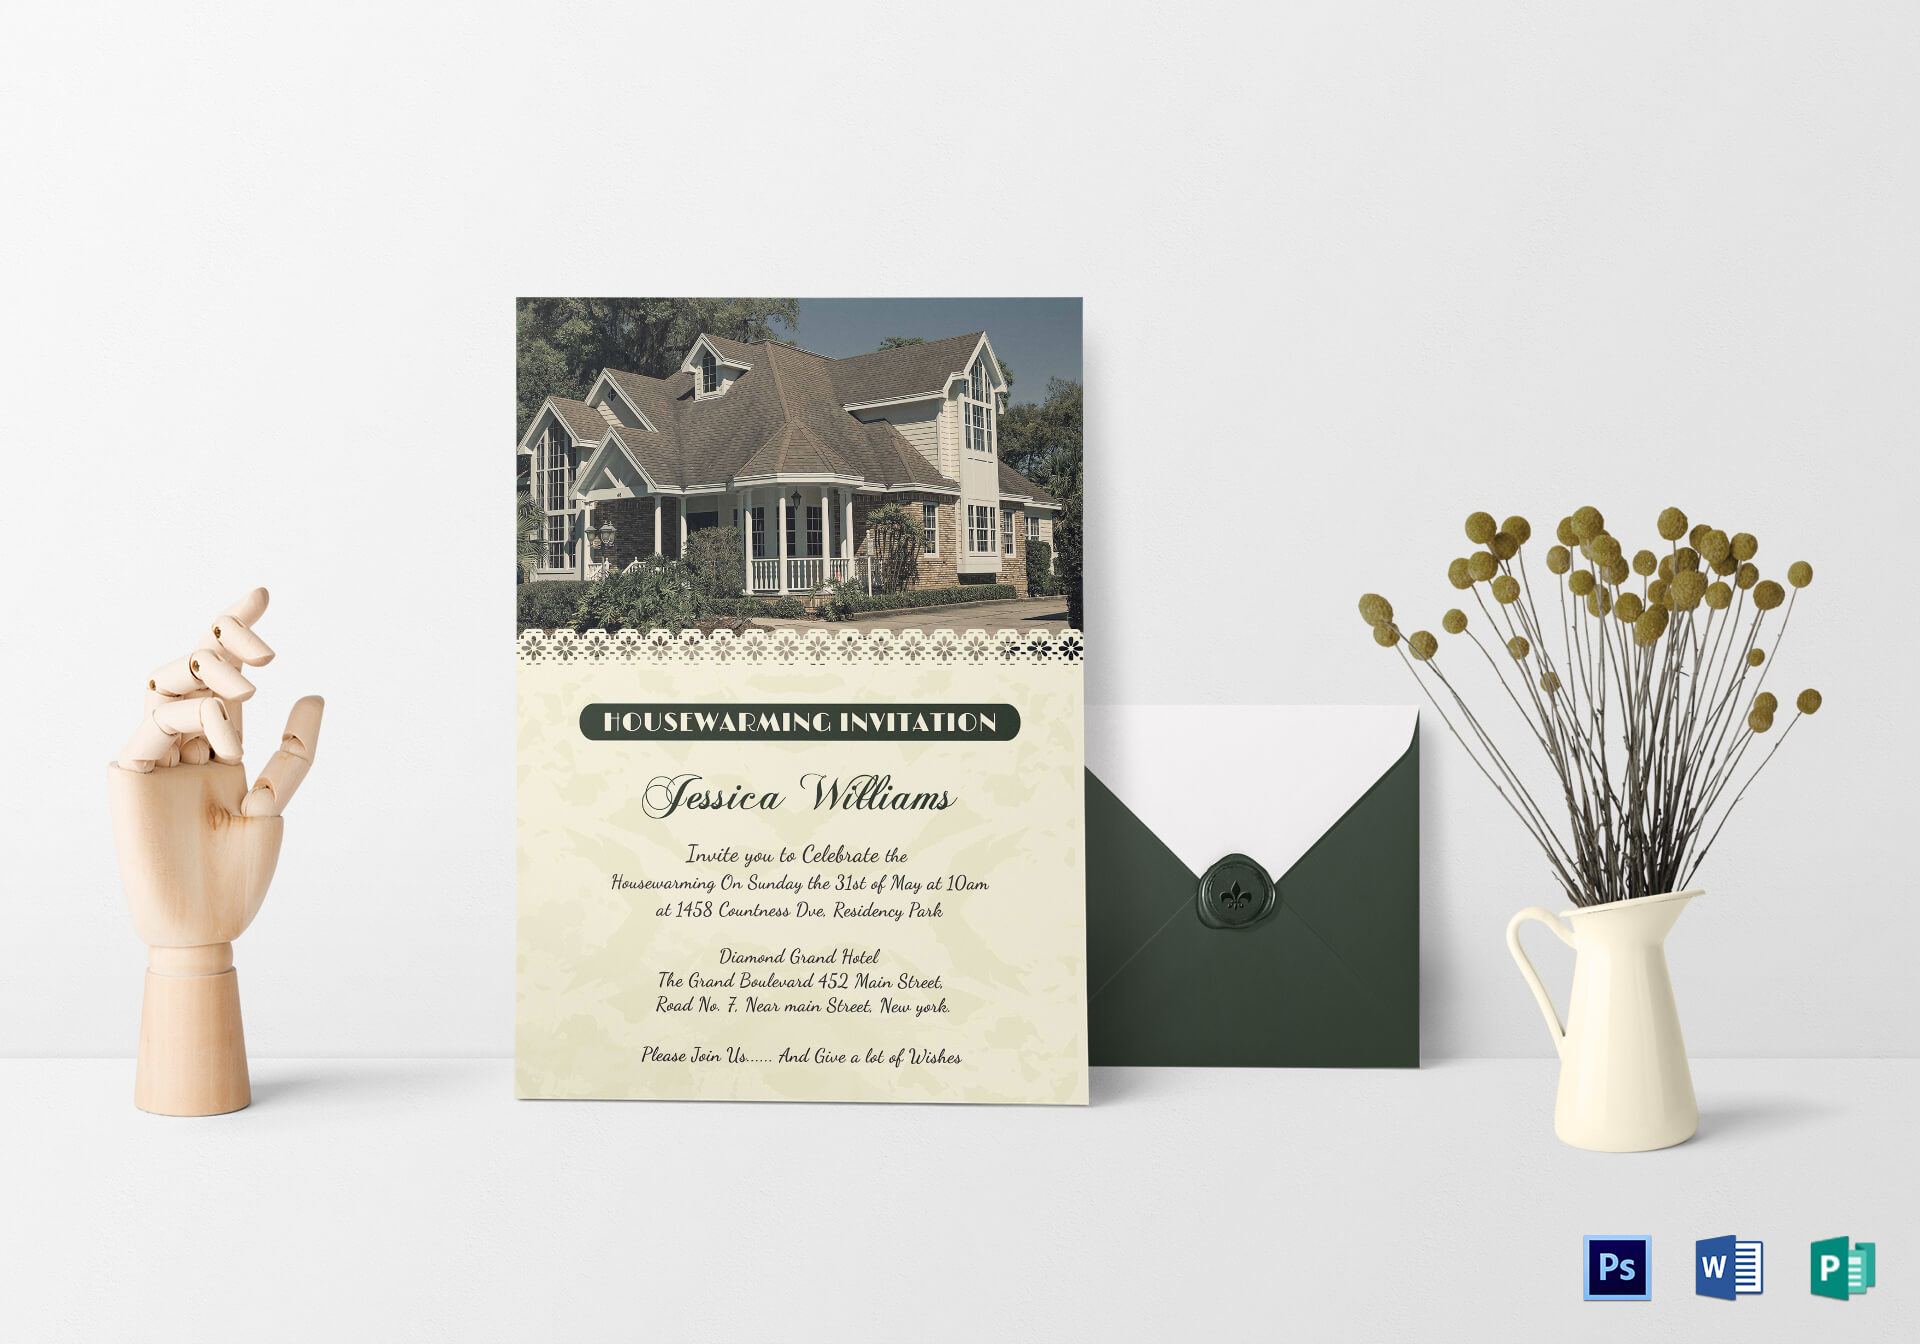 Welcoming Housewarming Invitation Card Template Inside Free Housewarming Invitation Card Template